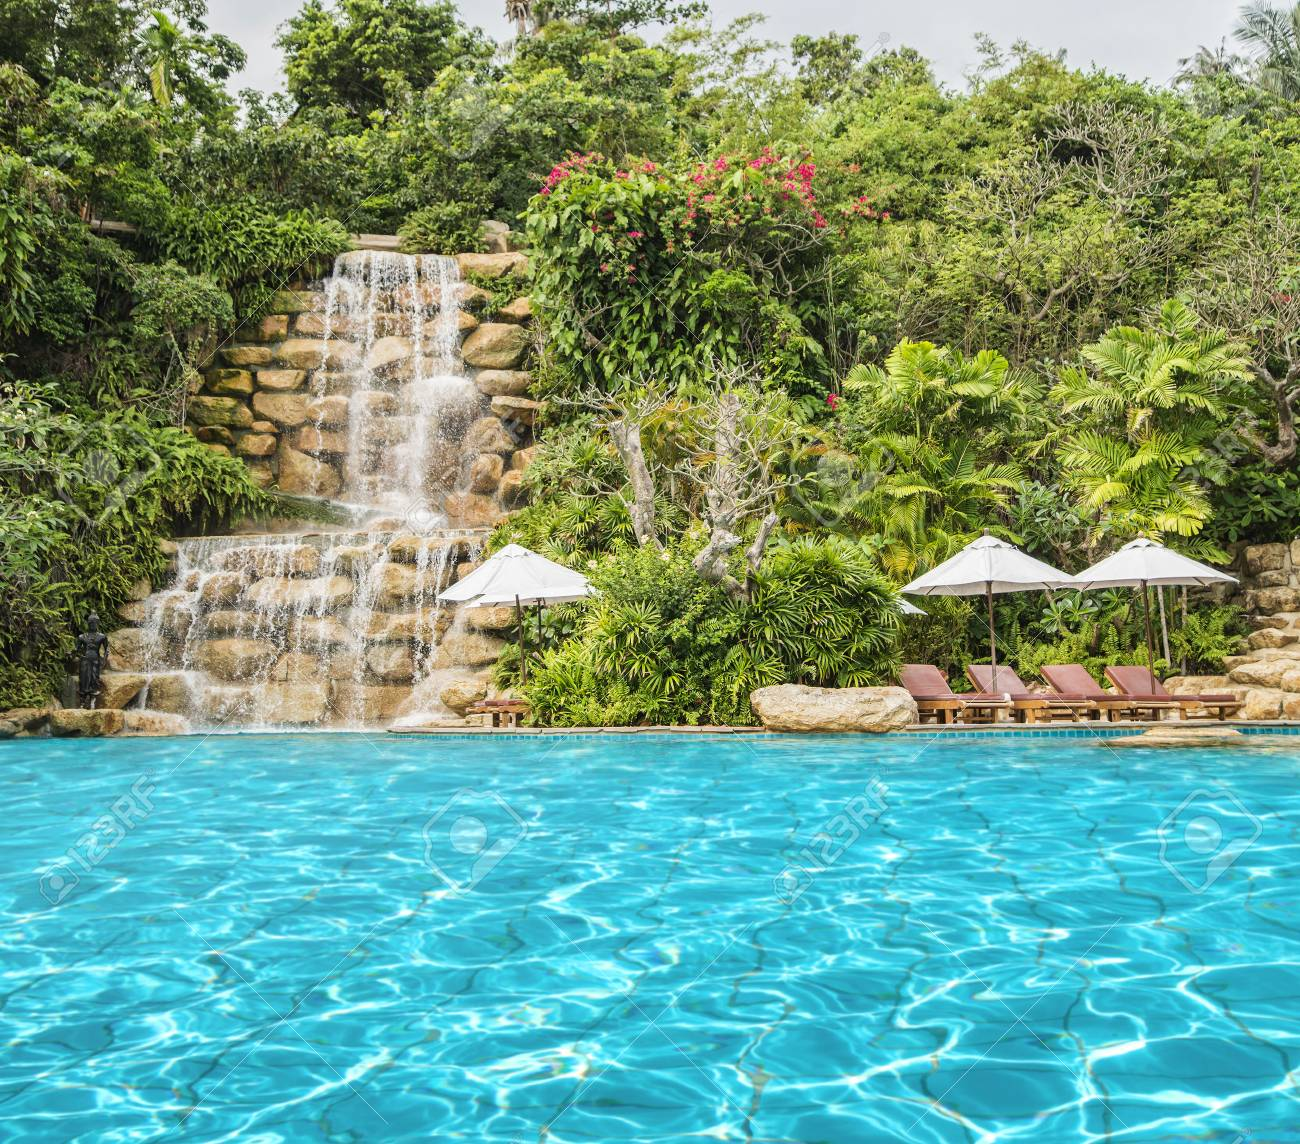 Paradise For Tourists With Crystal Clear Swimming Pool, Deckchairs ...